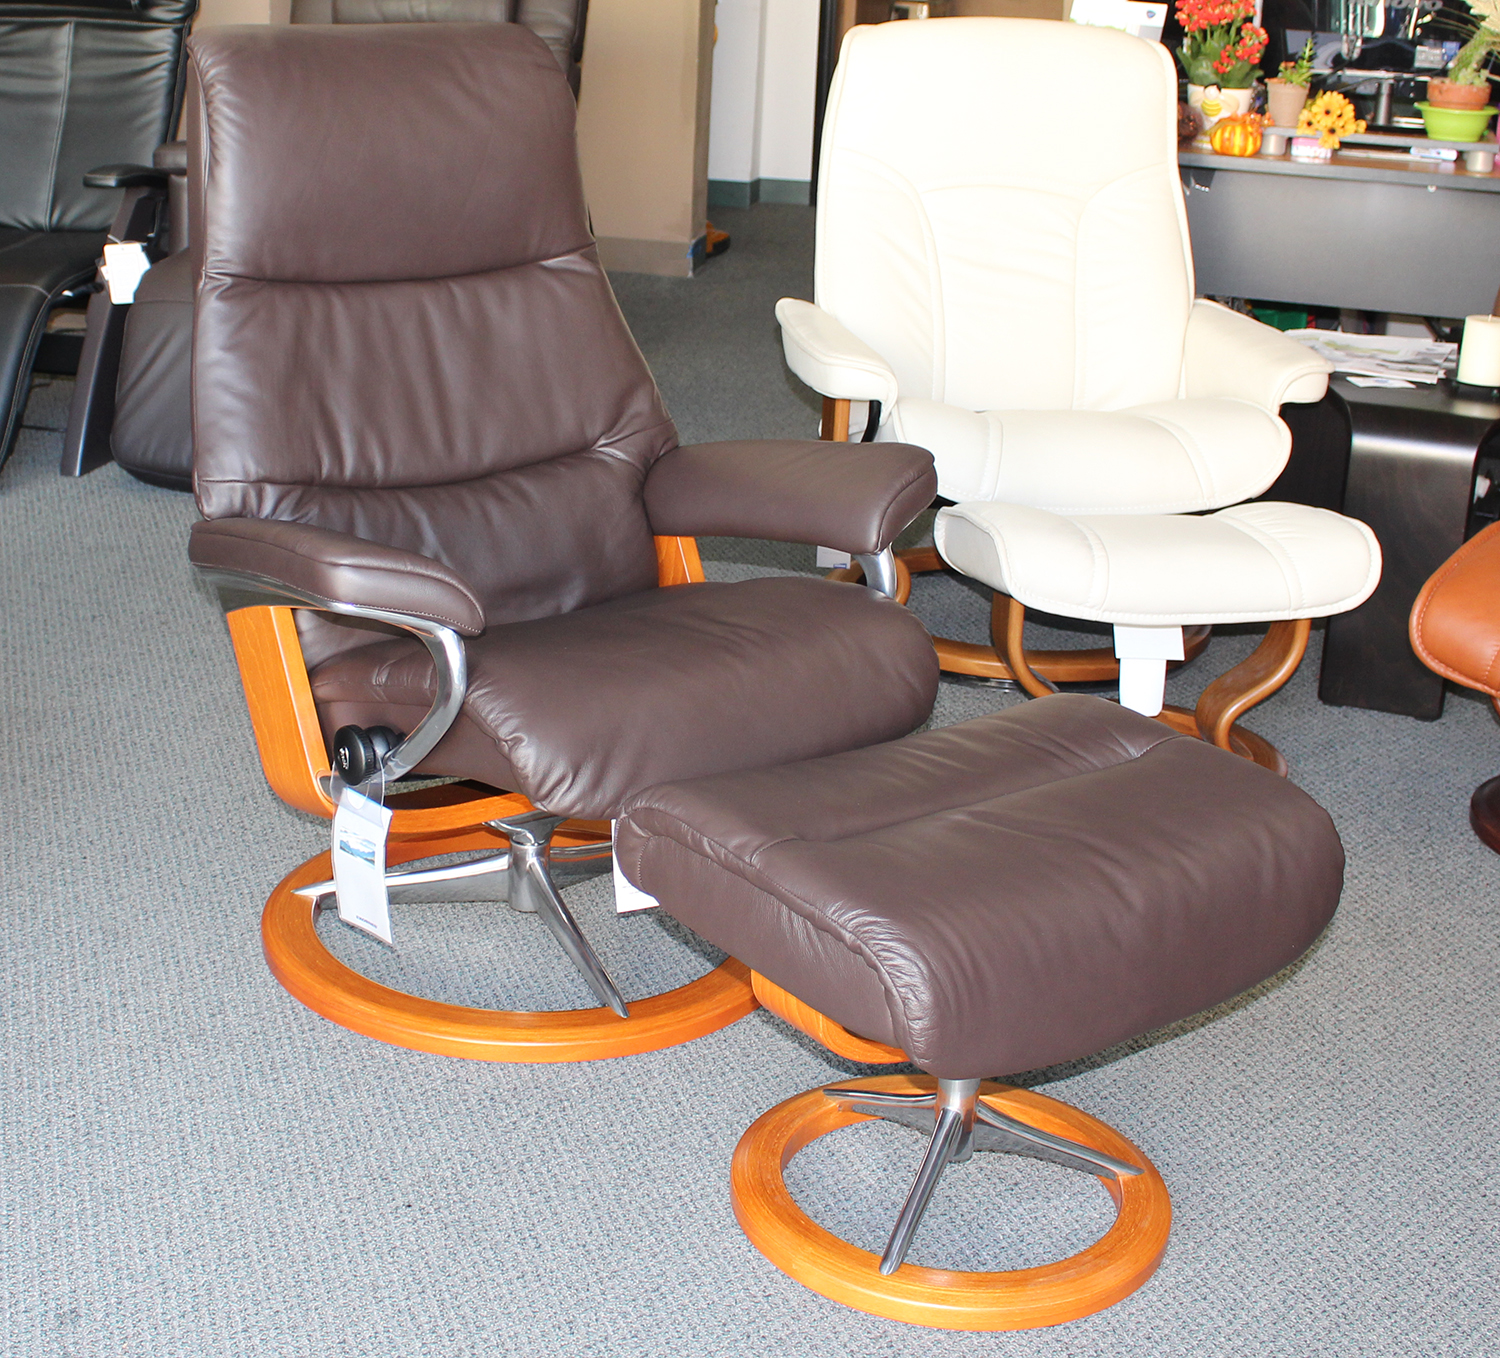 recliner massage chair ergonomic north sydney stressless view paloma mocca leather